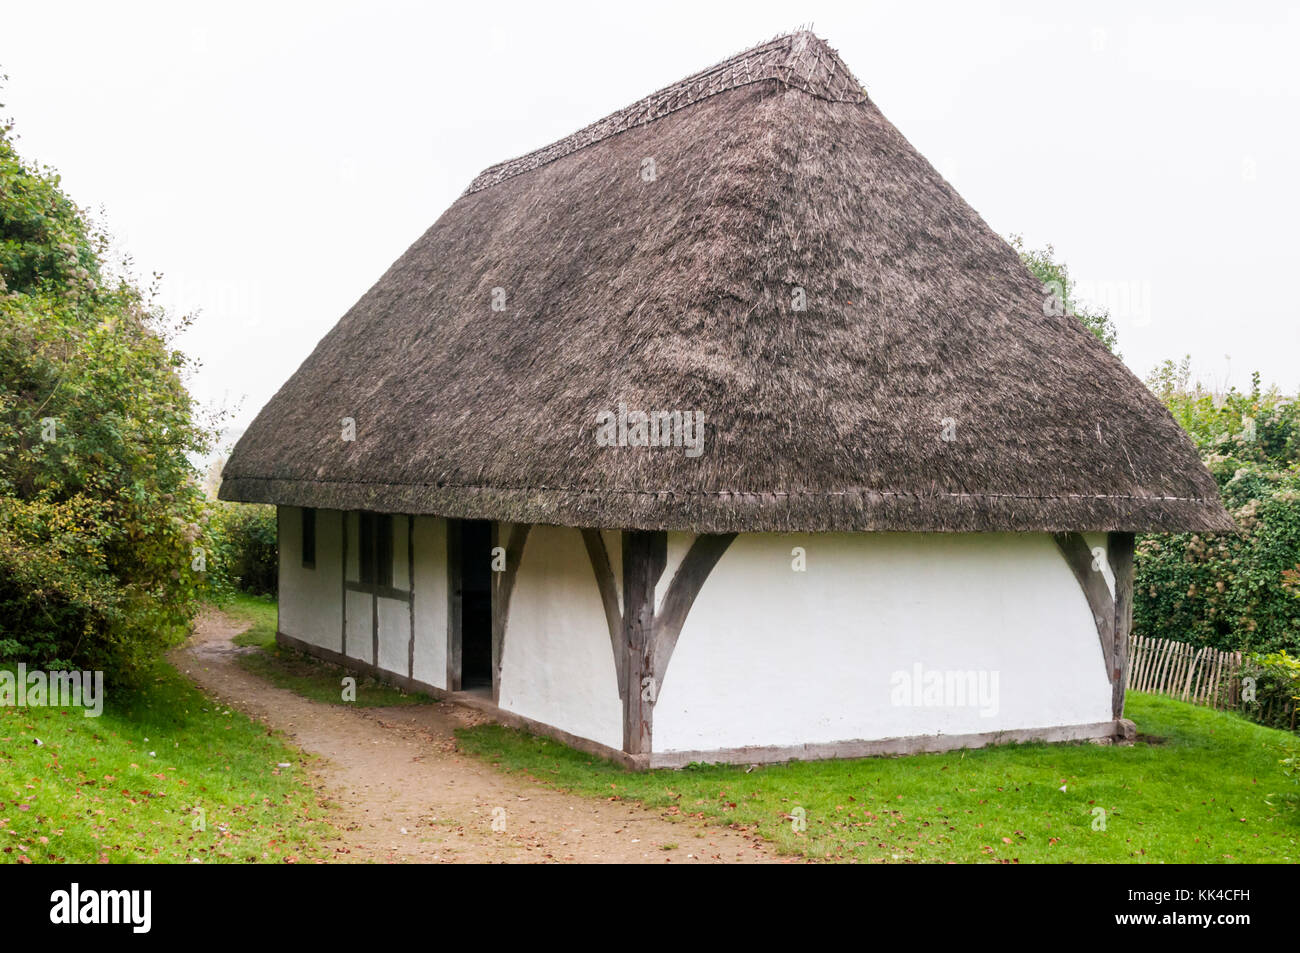 Late 14th century Hall from Boarhunt in Hampshire at the Weald and Downland Open Air Museum, Singleton, West Sussex. - Stock Image